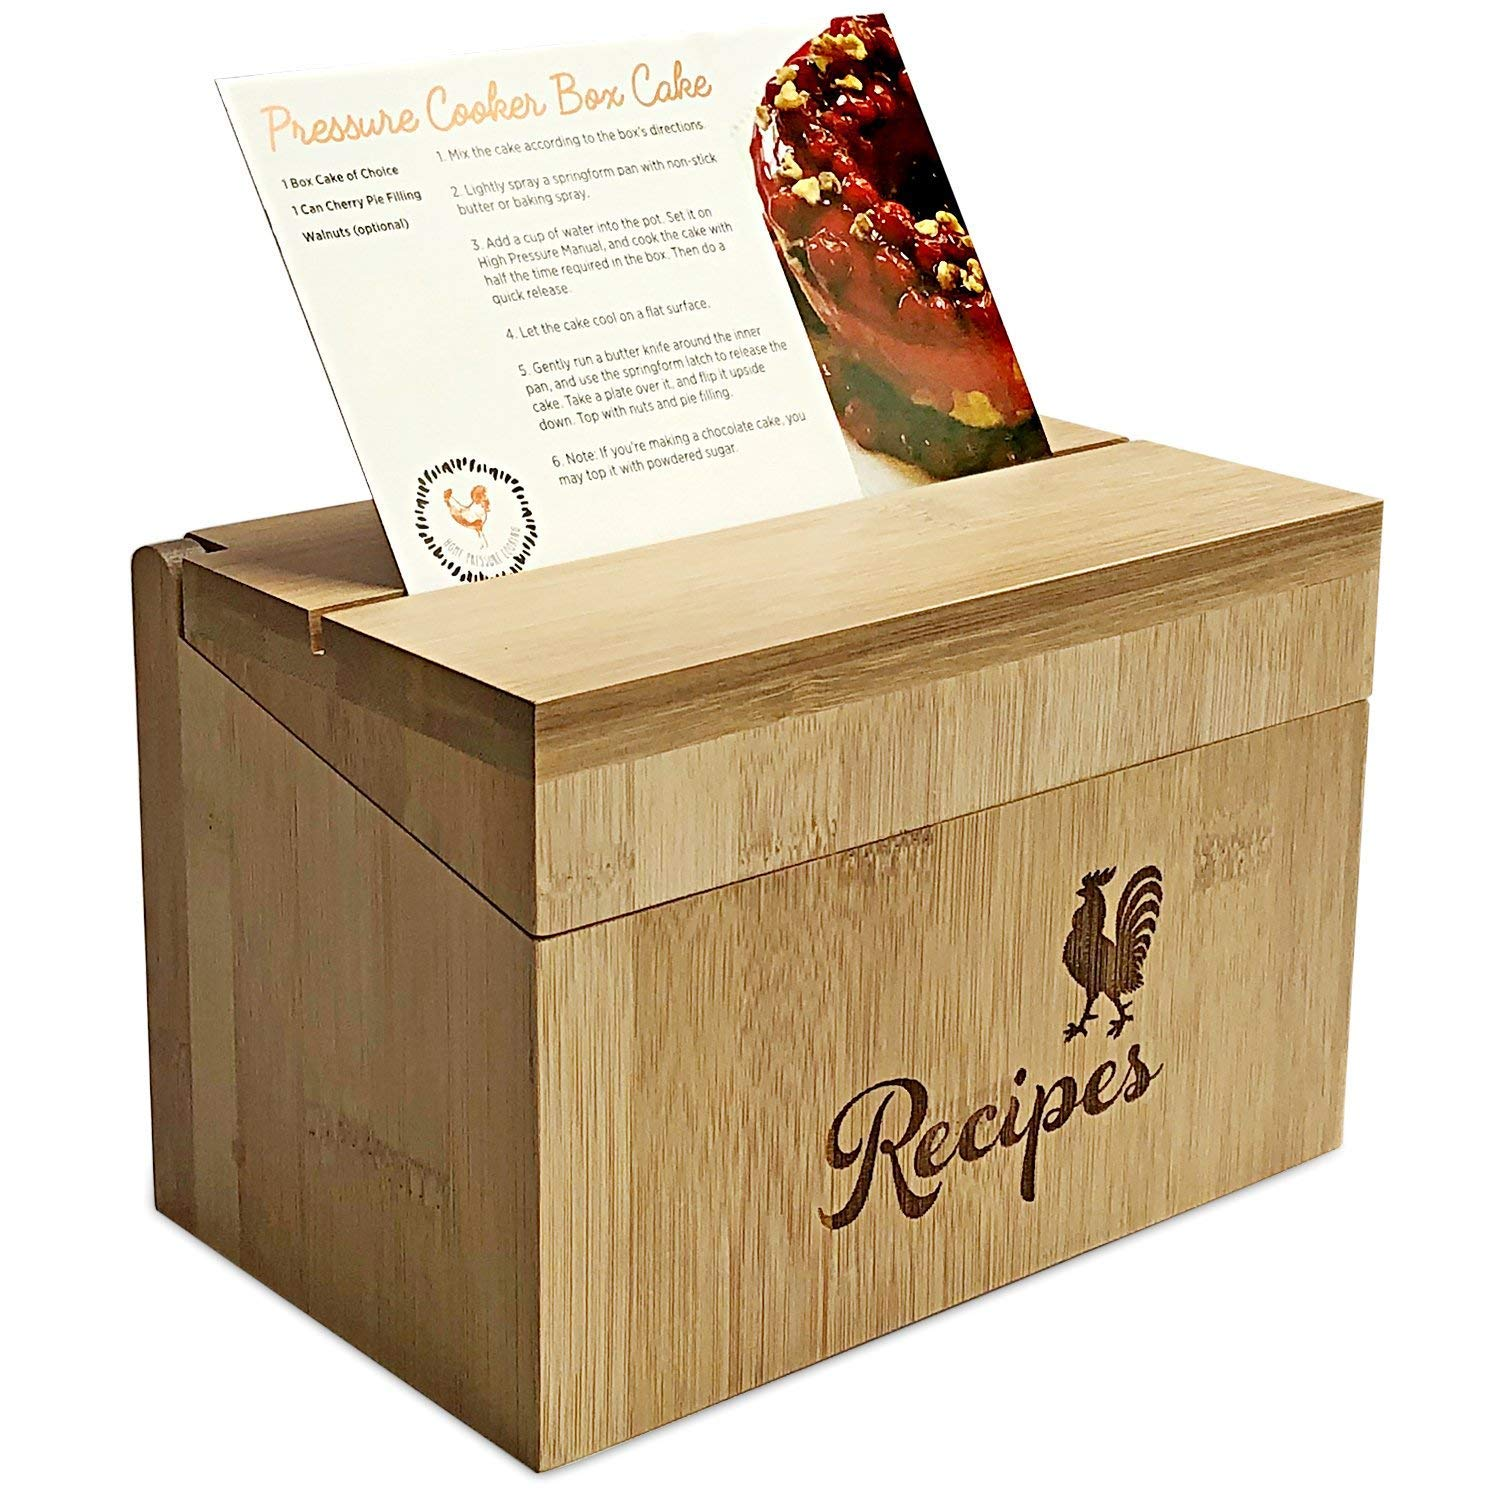 Wood Recipe Box with 40 Index Cards - Bamboo Wooden Construction - Includes 10 Printed Instant Pot Recipe Cards